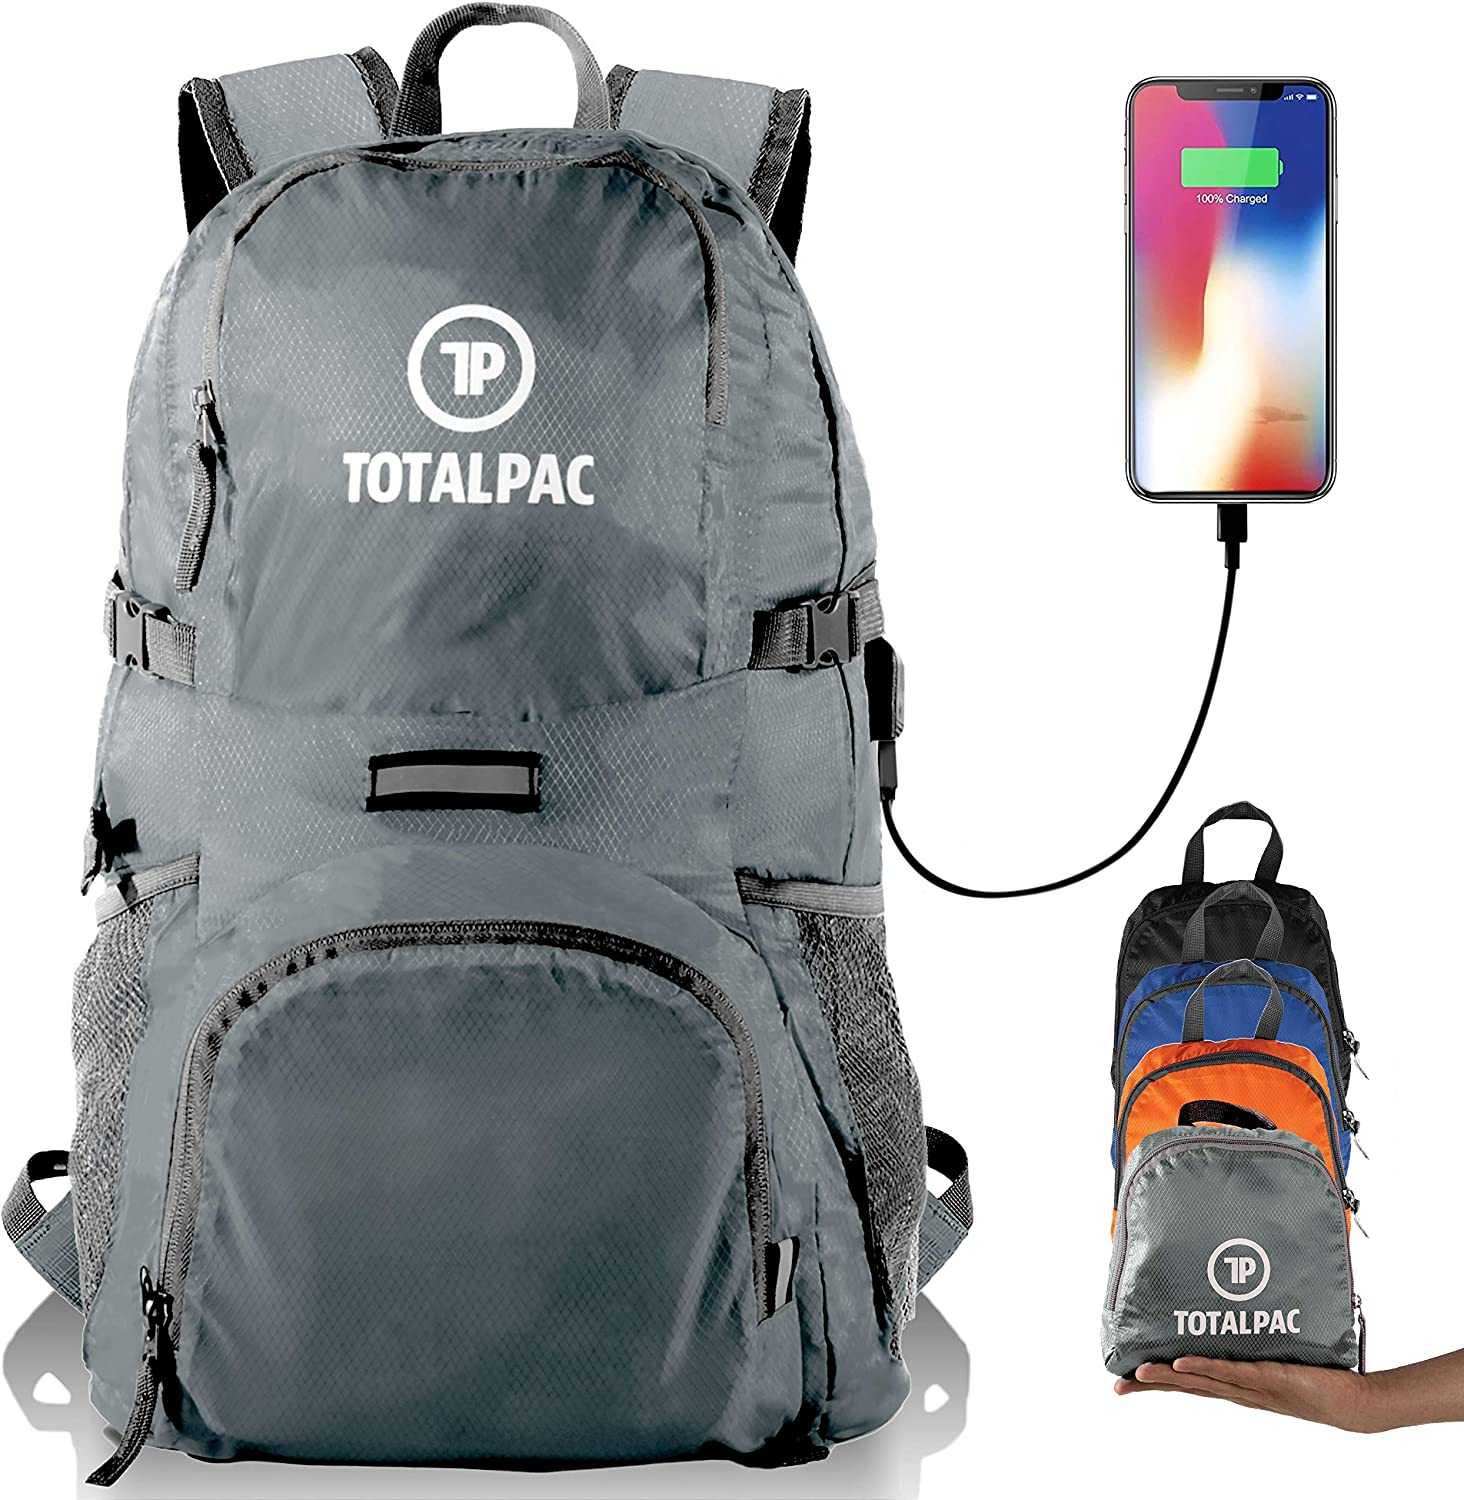 Totalpac – Hiking Daypack Foldable Backpack for Traveling, Hiking Camping